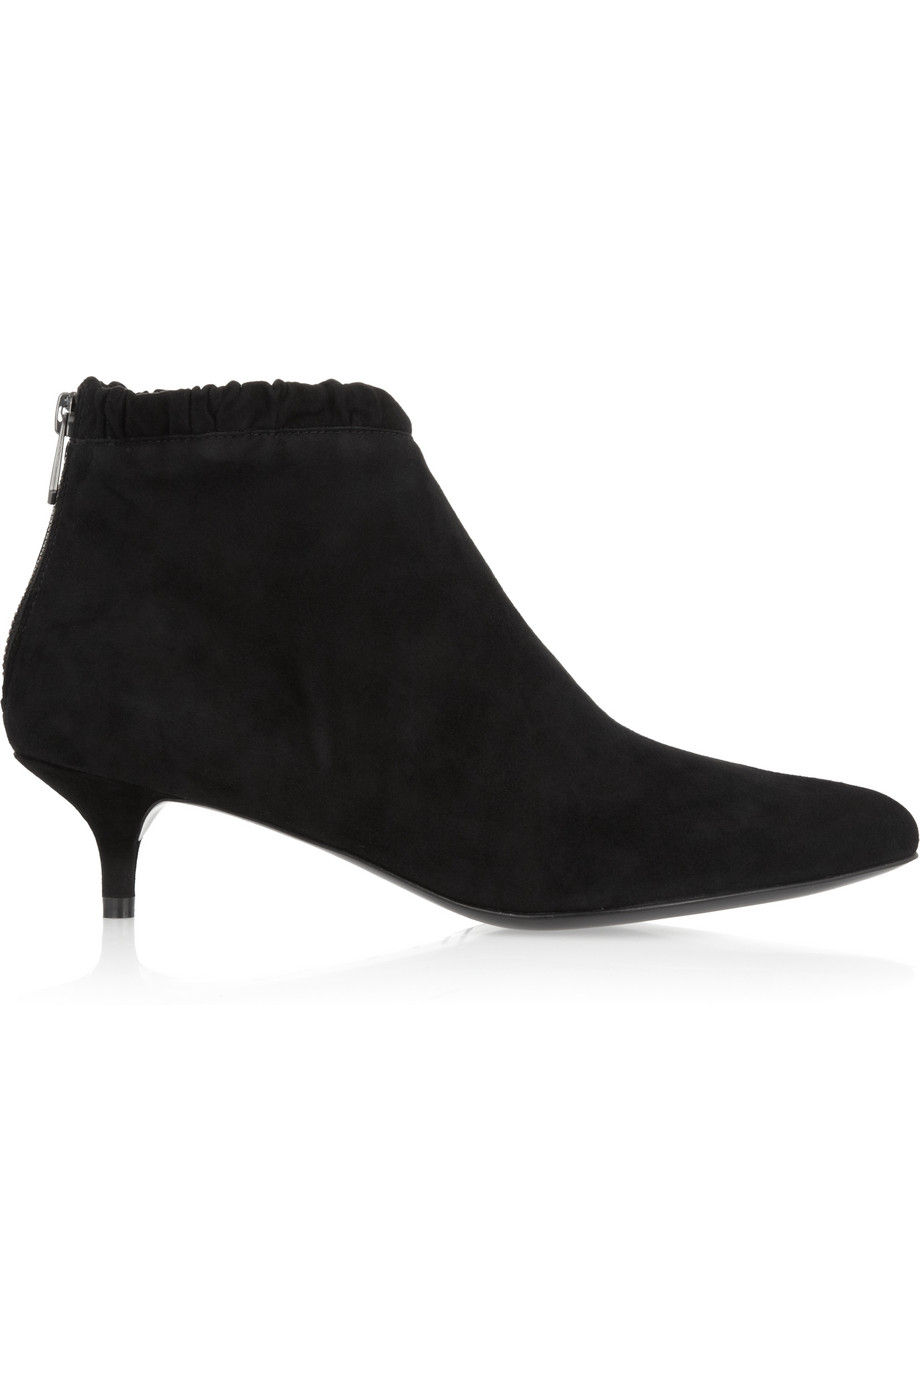 Kitten Heel Ankle Boots Uk - The Cutest Kittens